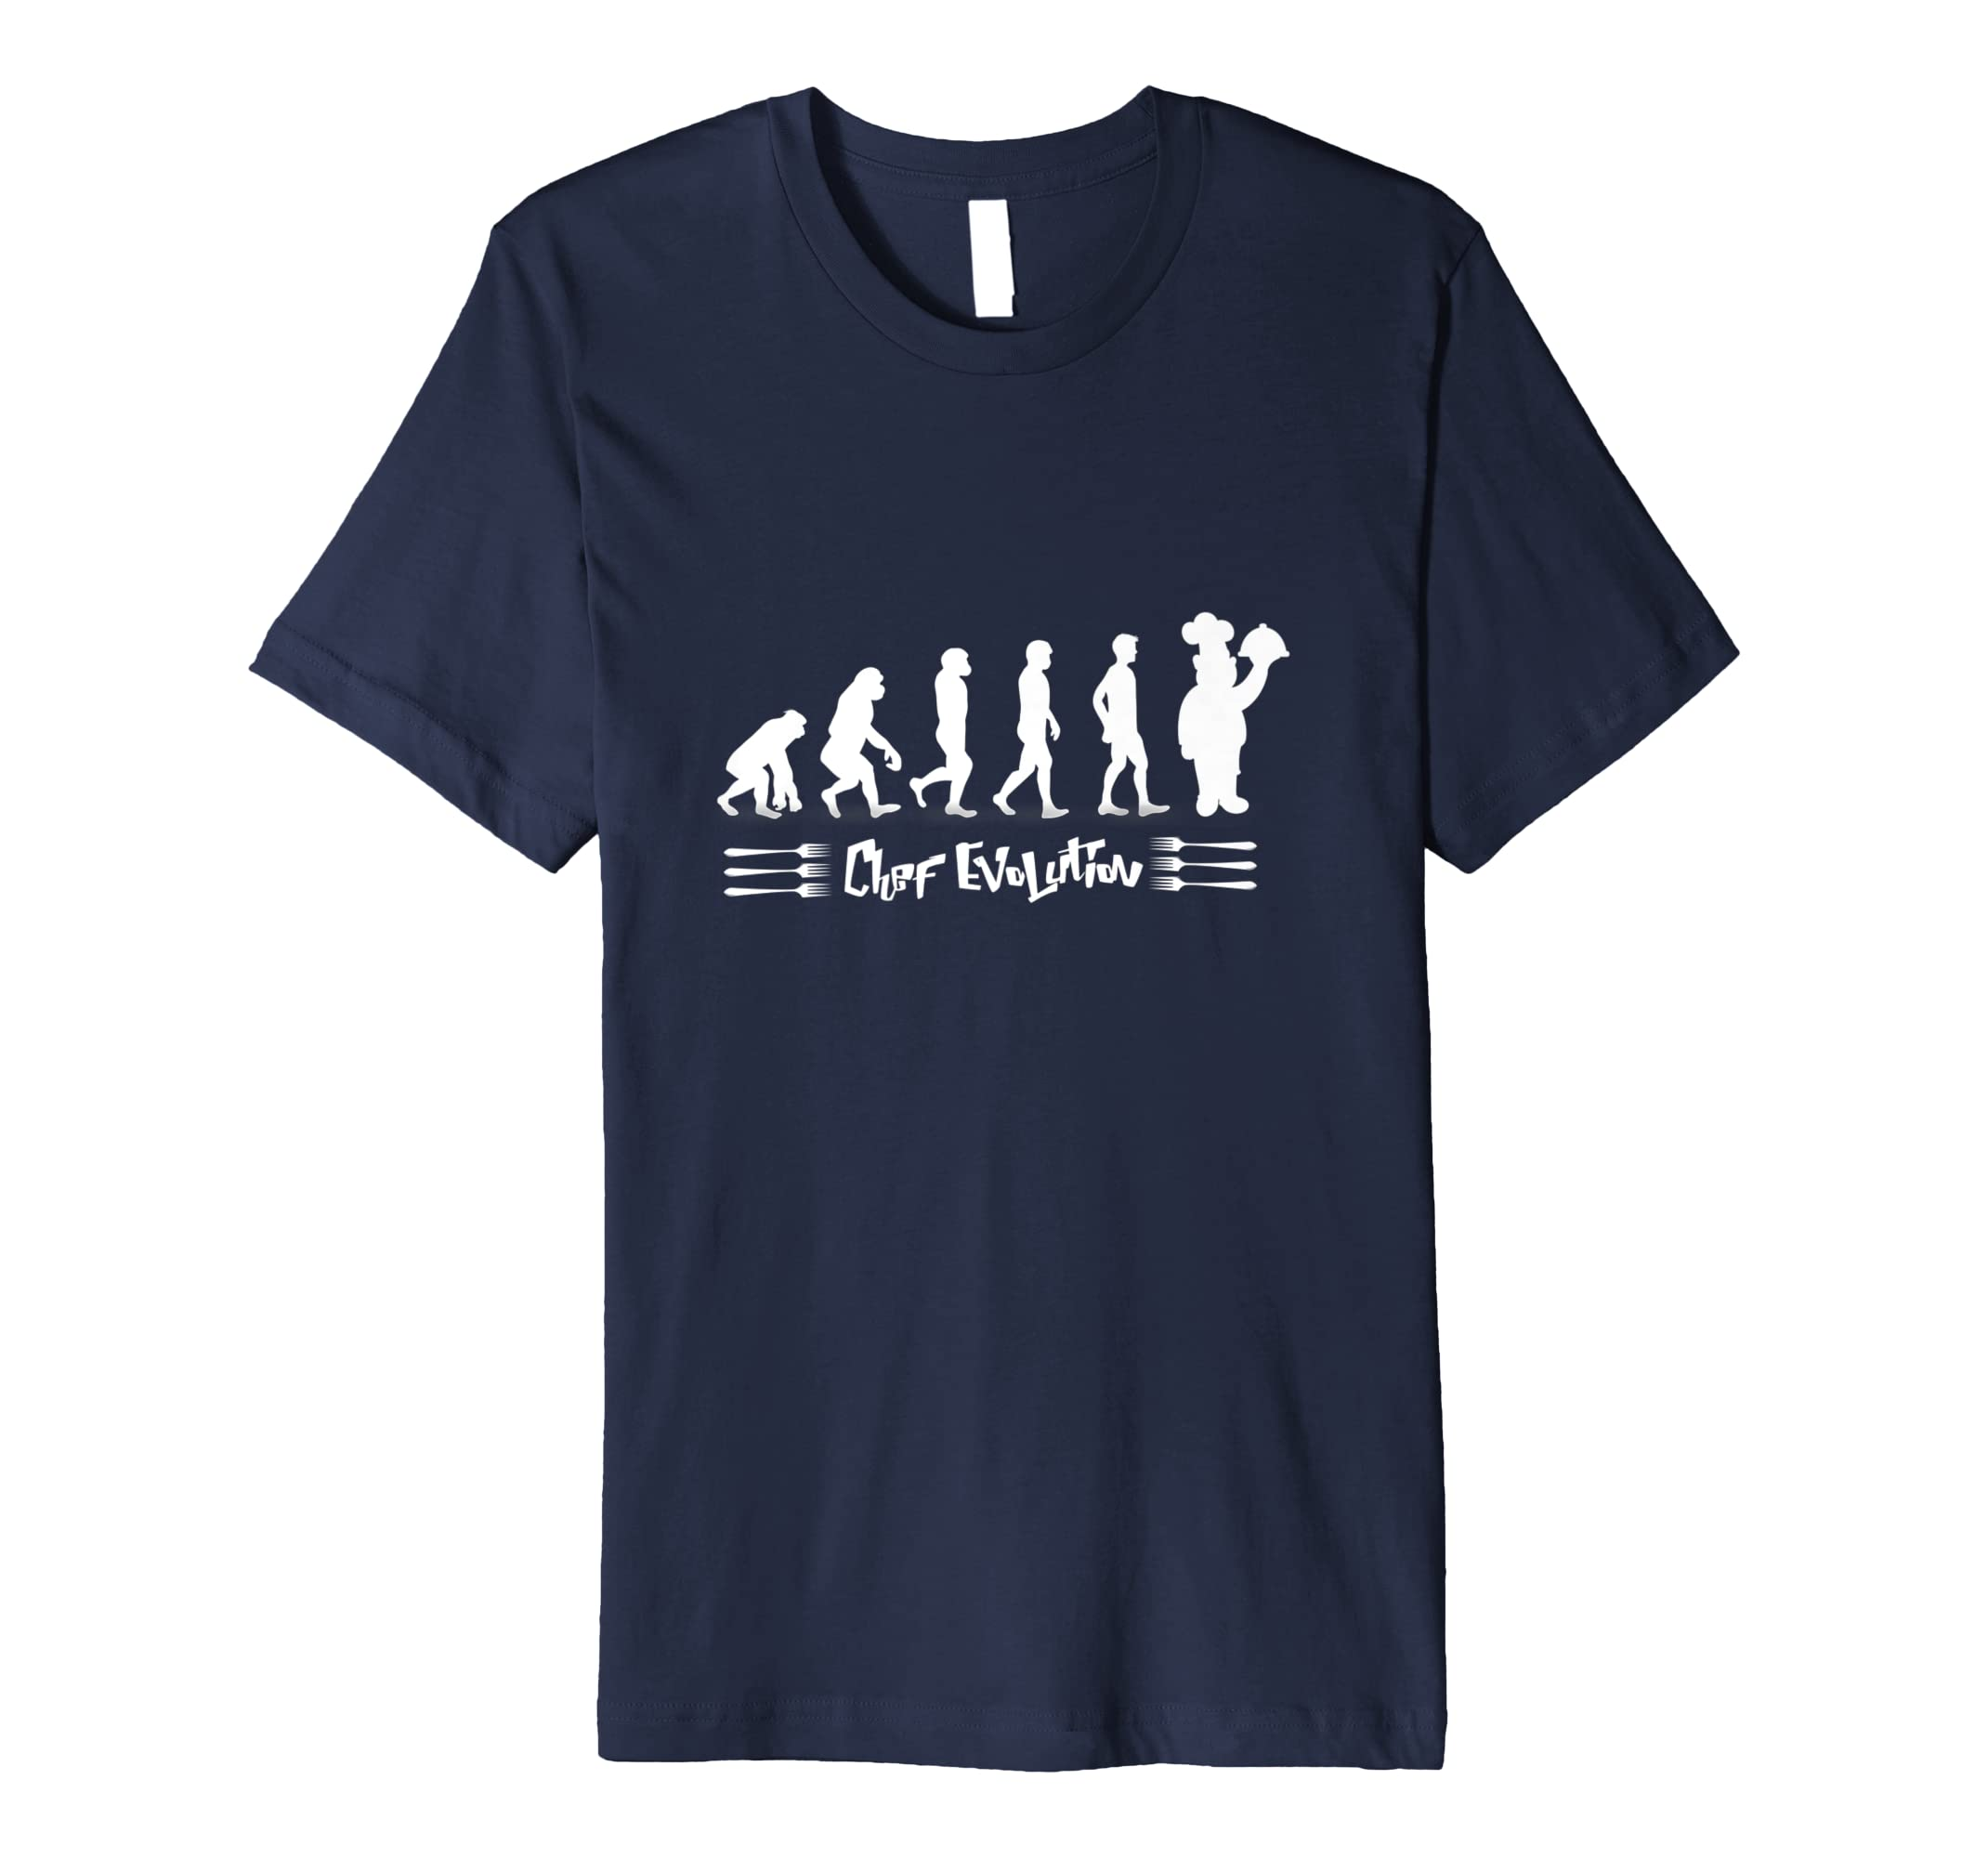 Culilnary Chef Evolution Funny Cooking T Shirt For Men women-azvn